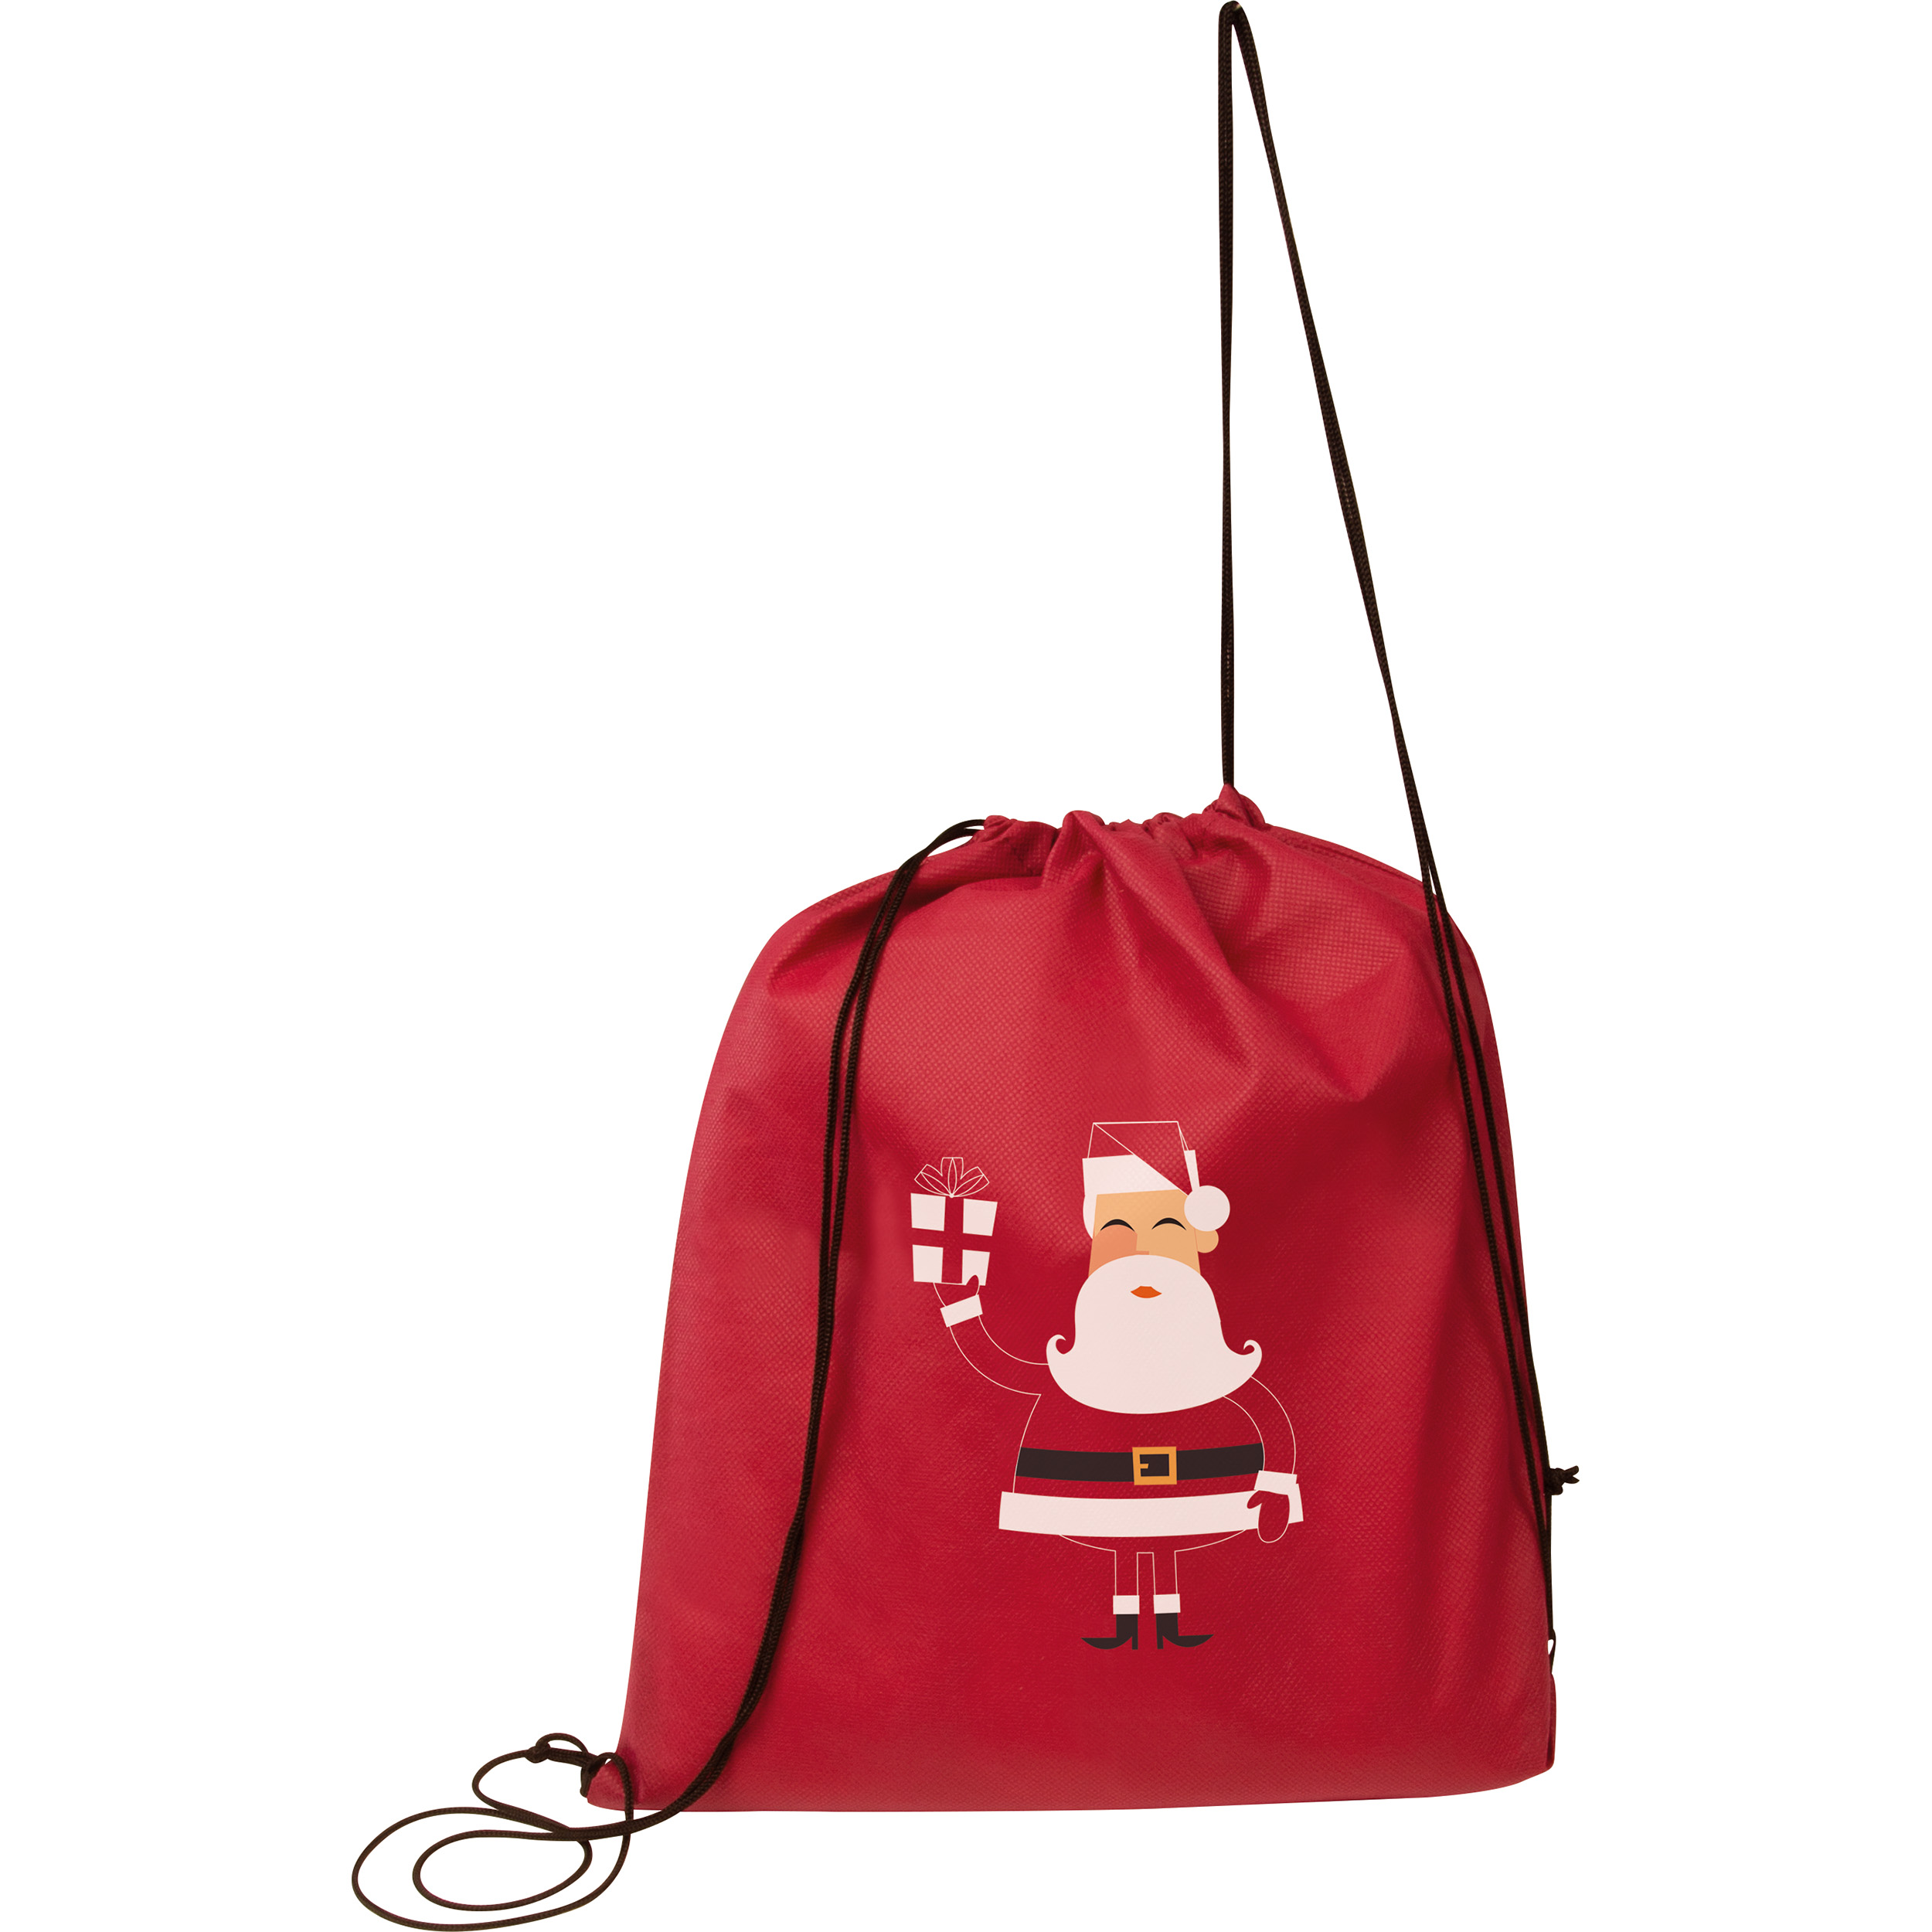 Gymbag with Christmas design